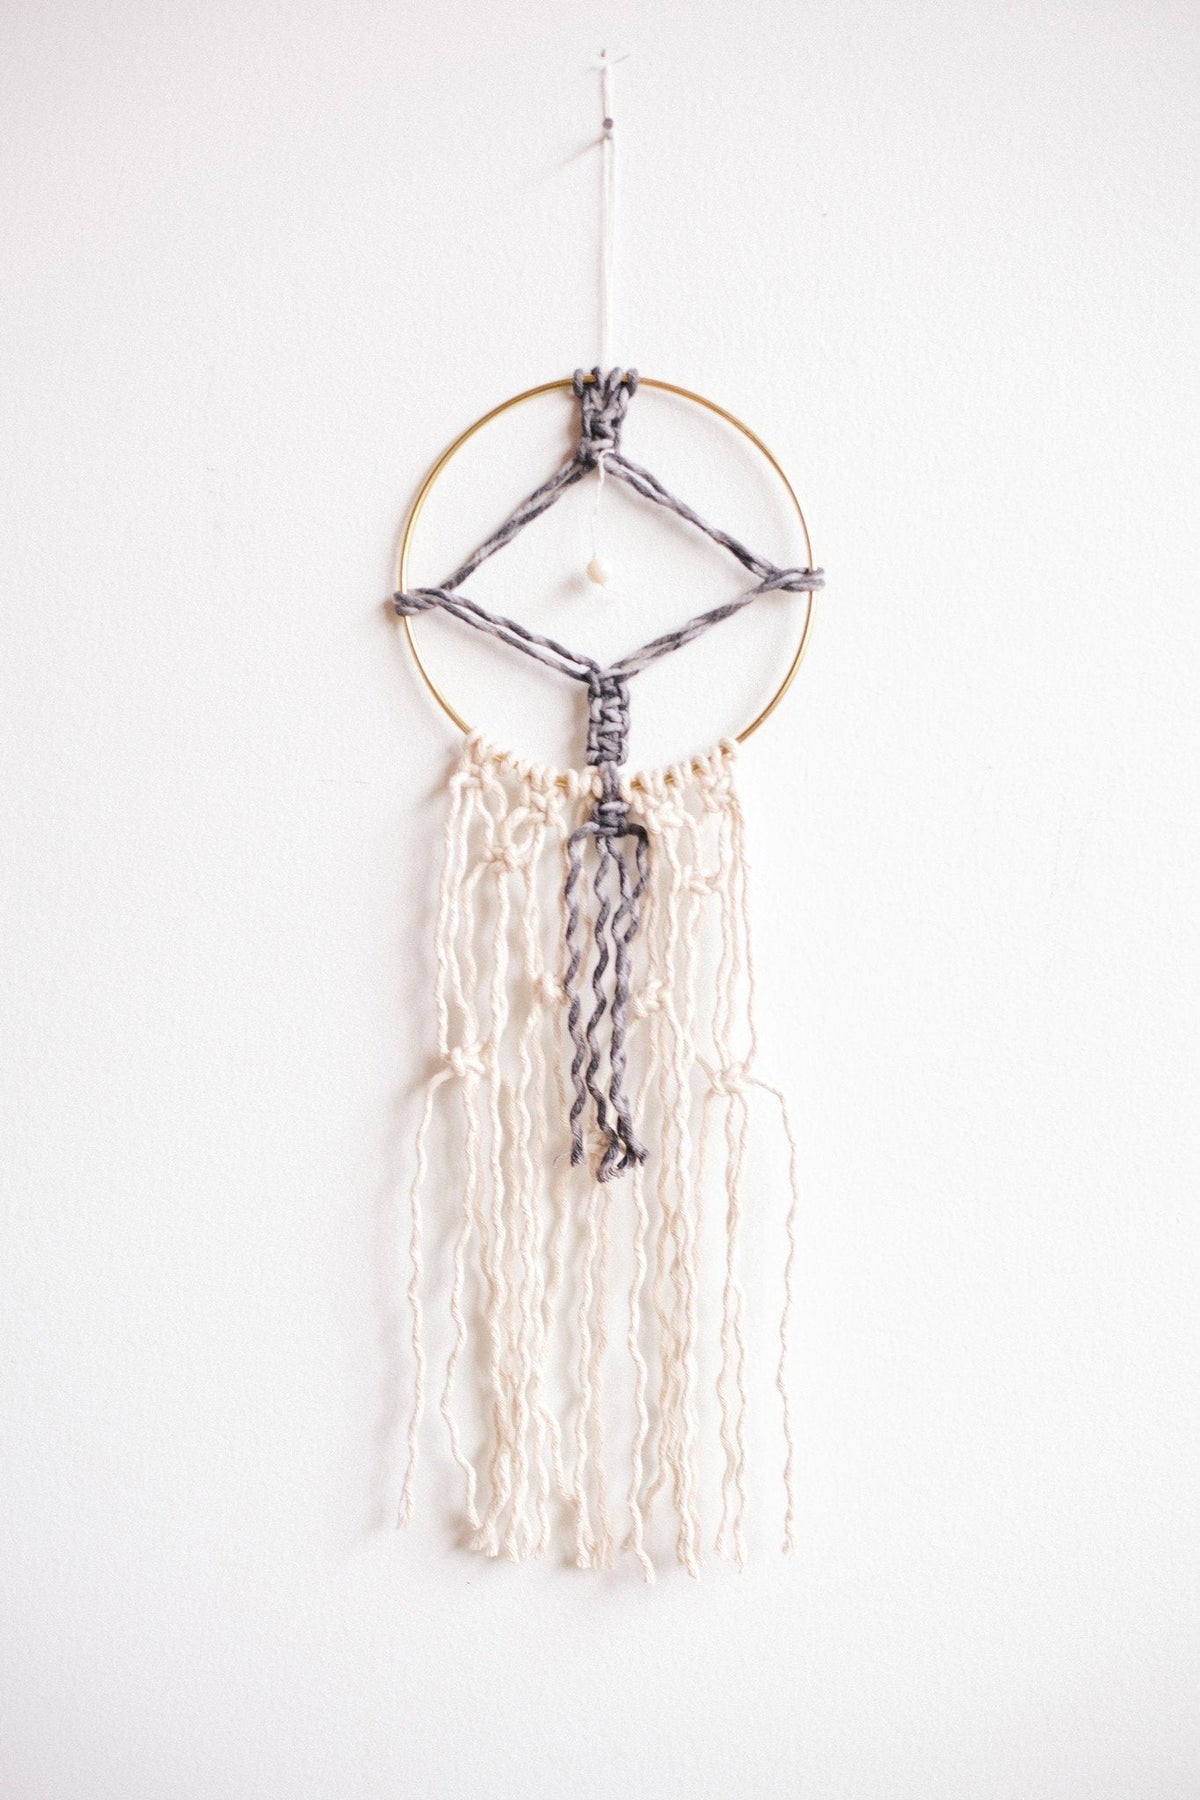 Brass Hoop - Various Sizes, DIY - MODERN MACRAMÉ